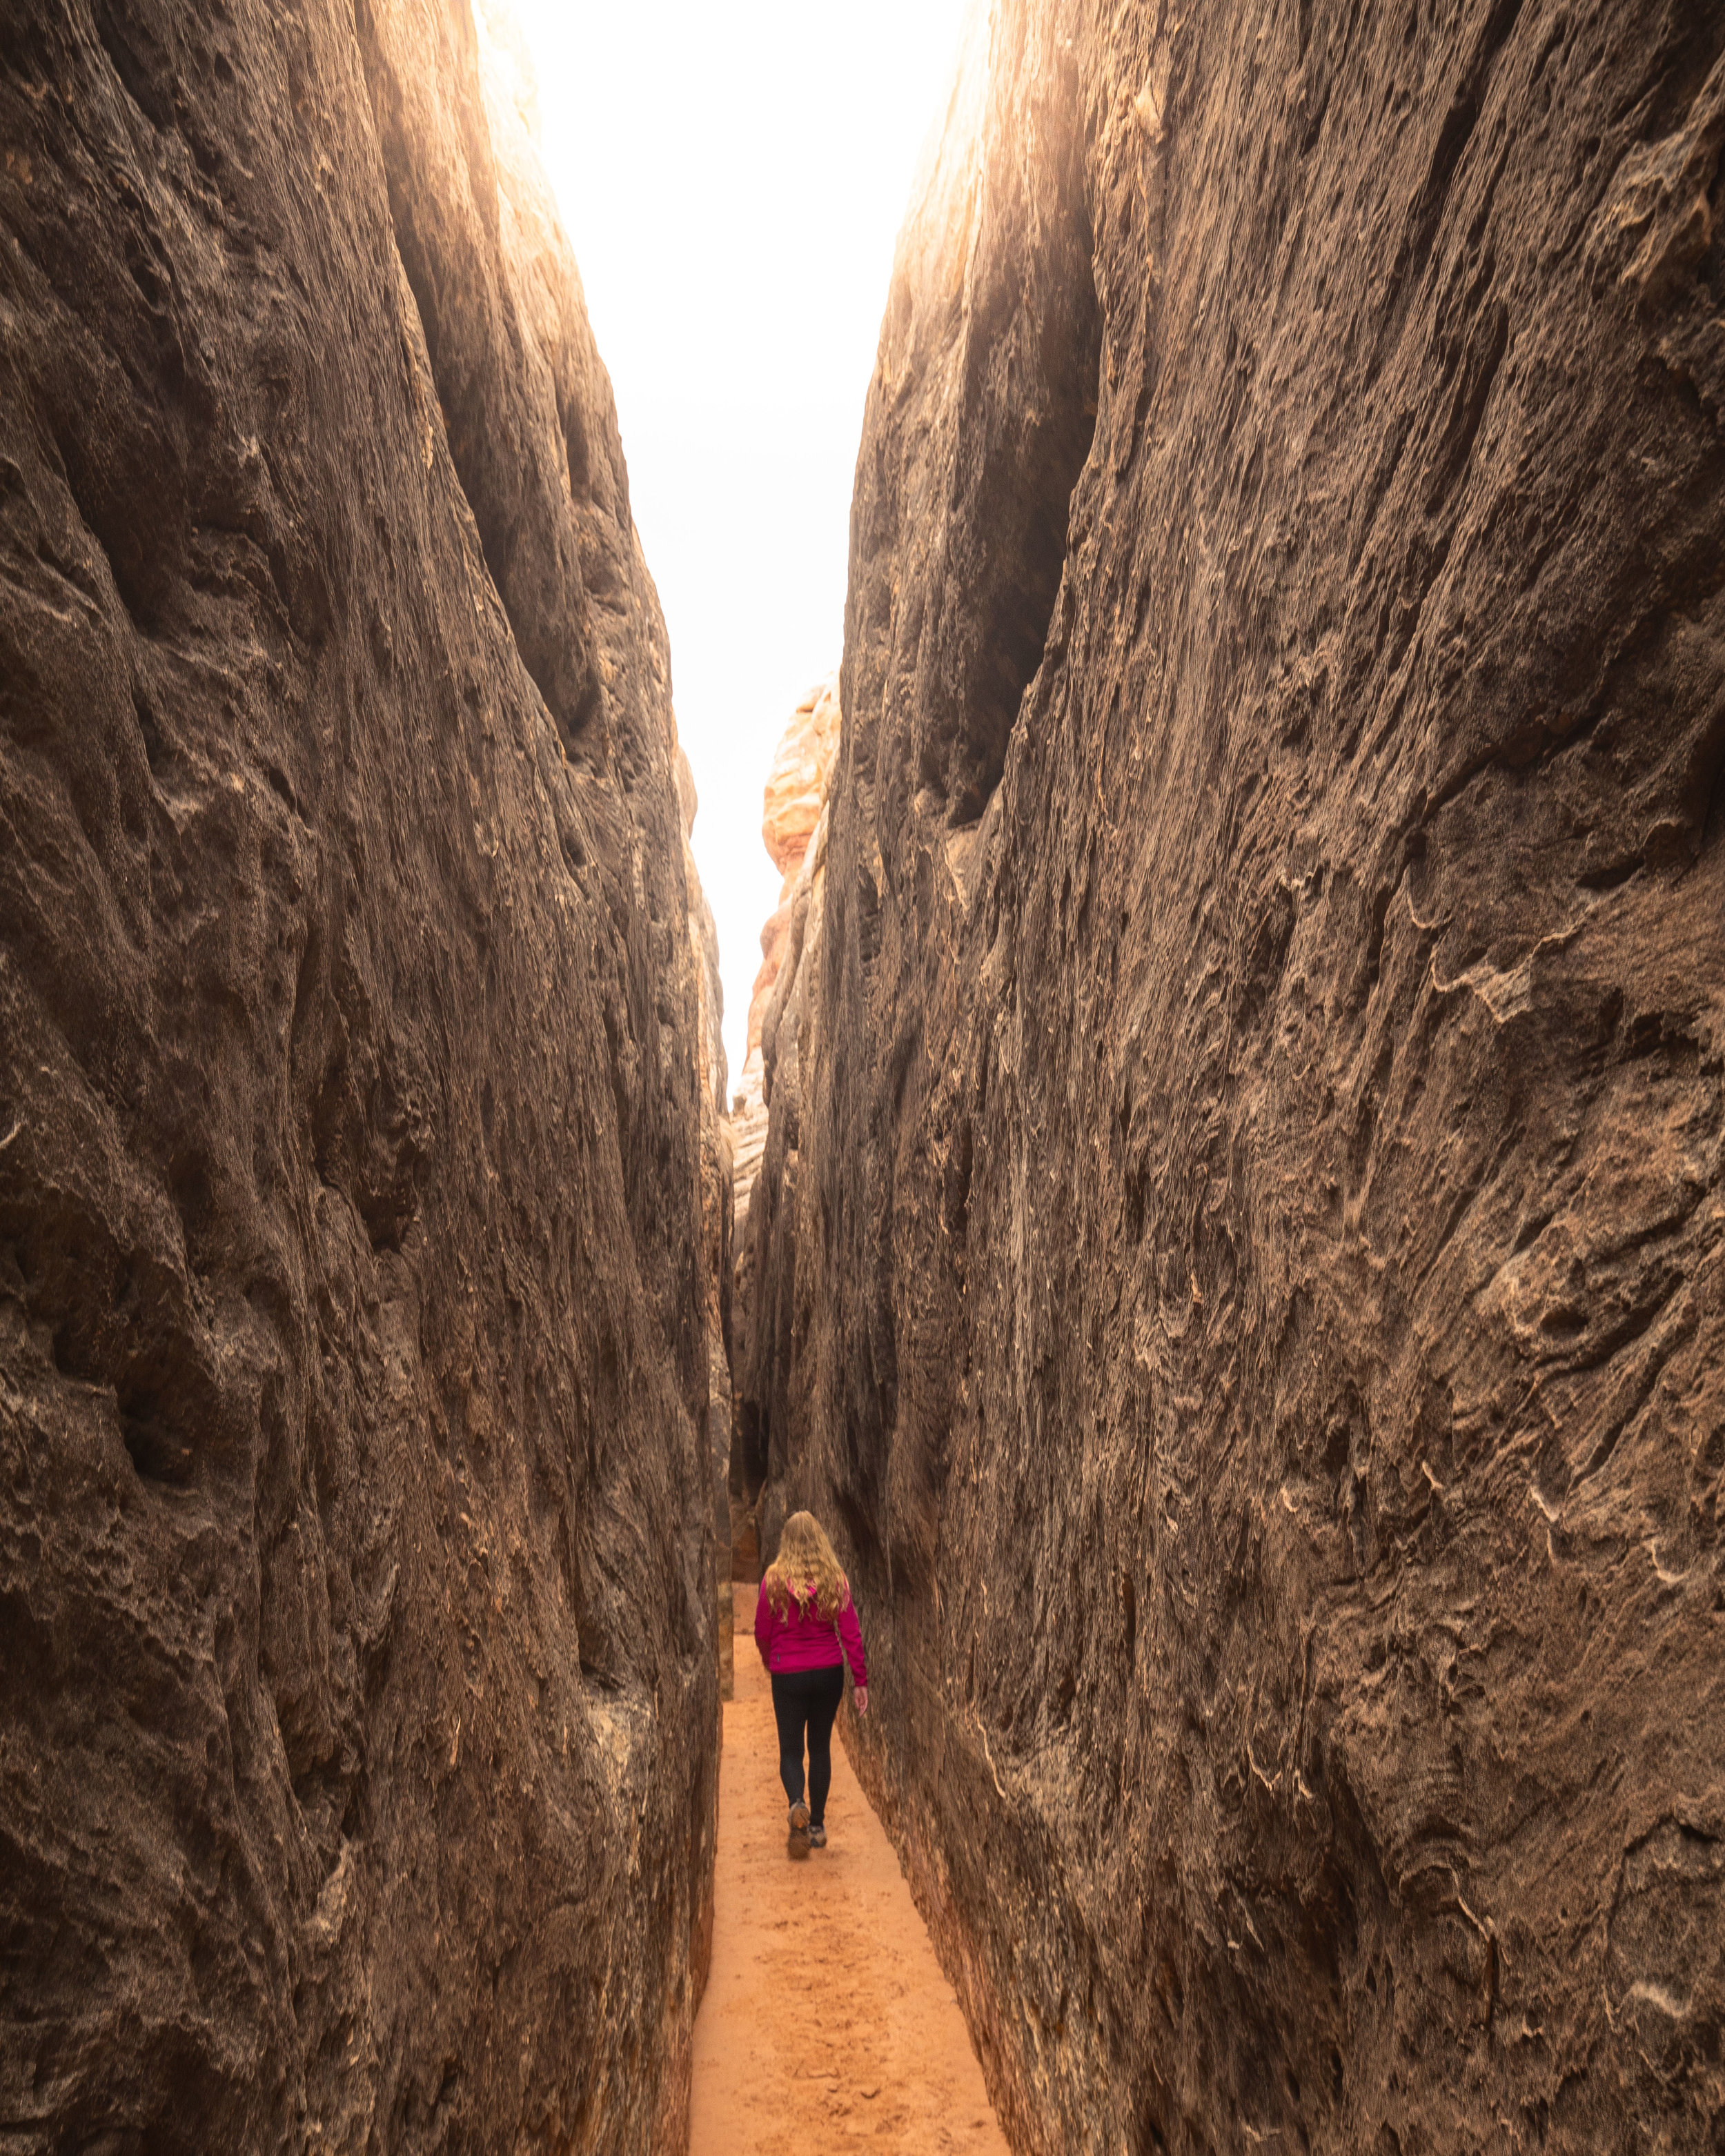 The slot canyon in Needles, Canyonlands National Park